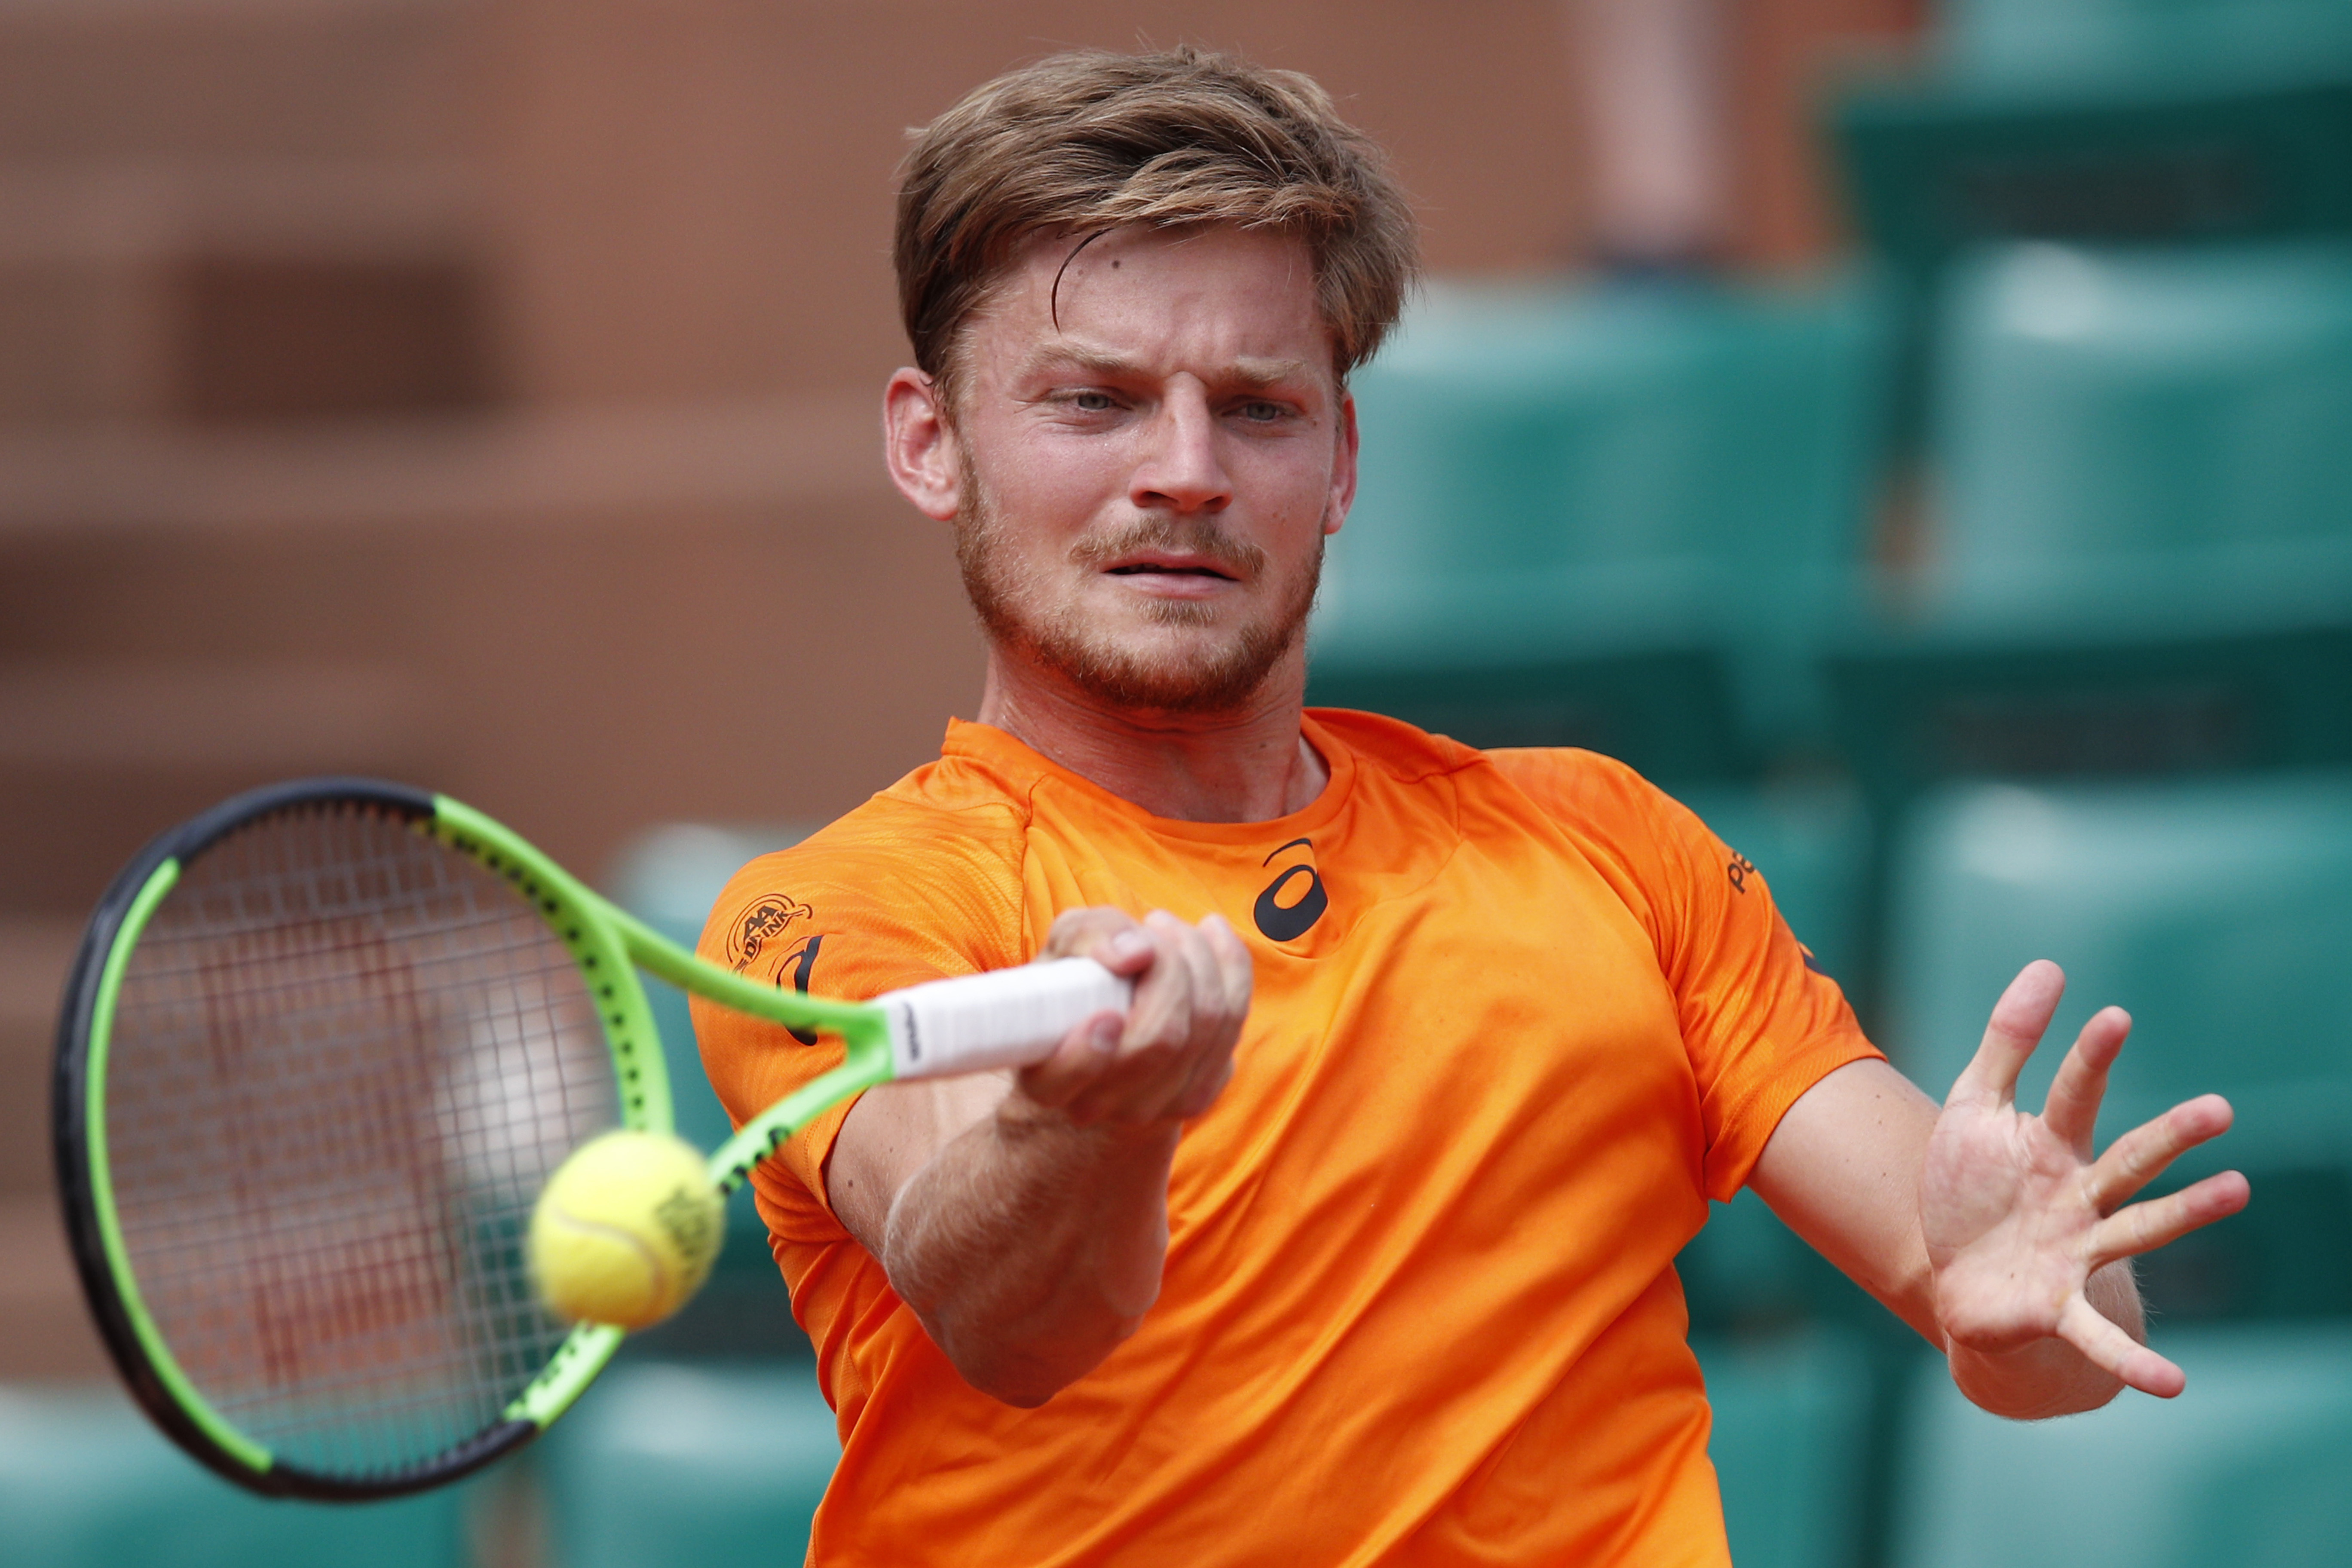 Belgium's David Goffin plays a shot against Argentina's Horacio Zeballos during their third round match of the French Open tennis tournament at the Roland Garros stadium, in Paris, France. Friday, June 2, 2017. (AP Photo/Christophe Ena)